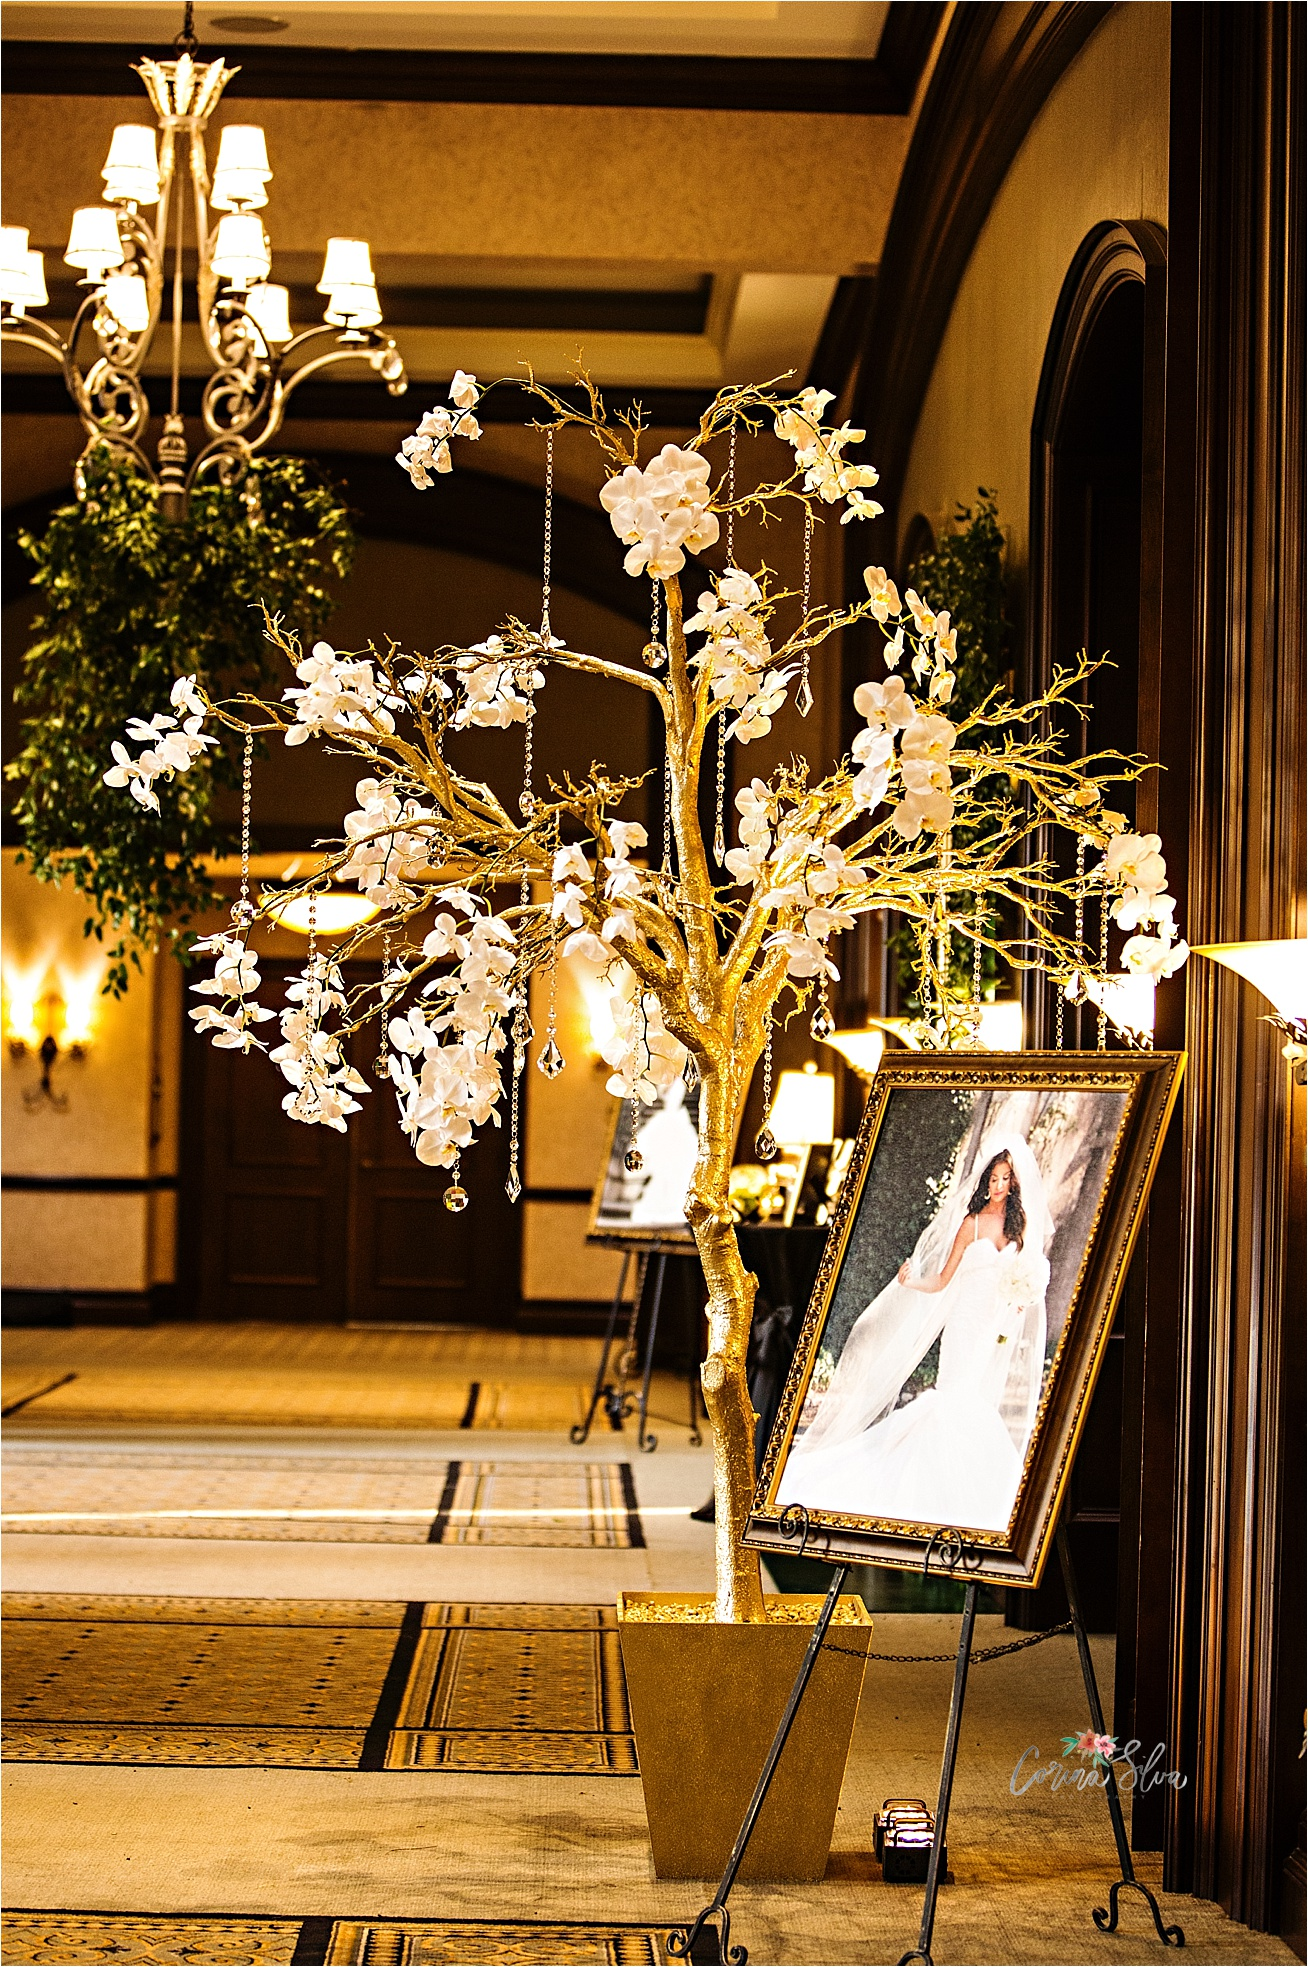 RSG-Event-and-Designs-luxury-wedding-decor-photos, Corina-Silva-Studios_0028.jpg